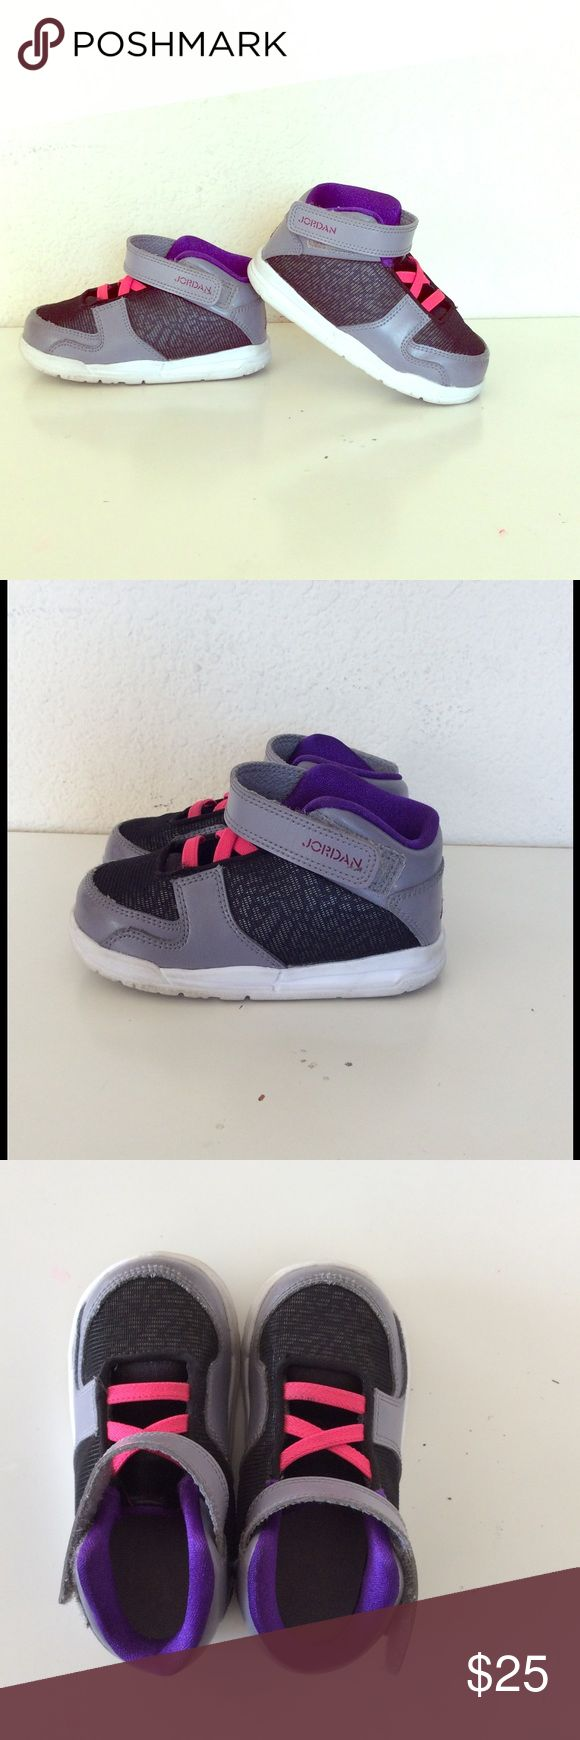 Great used condition Nike Jordan size 7C Great used condition Nike Jordan size 7C (13cm) for toddler Nike Shoes Sneakers